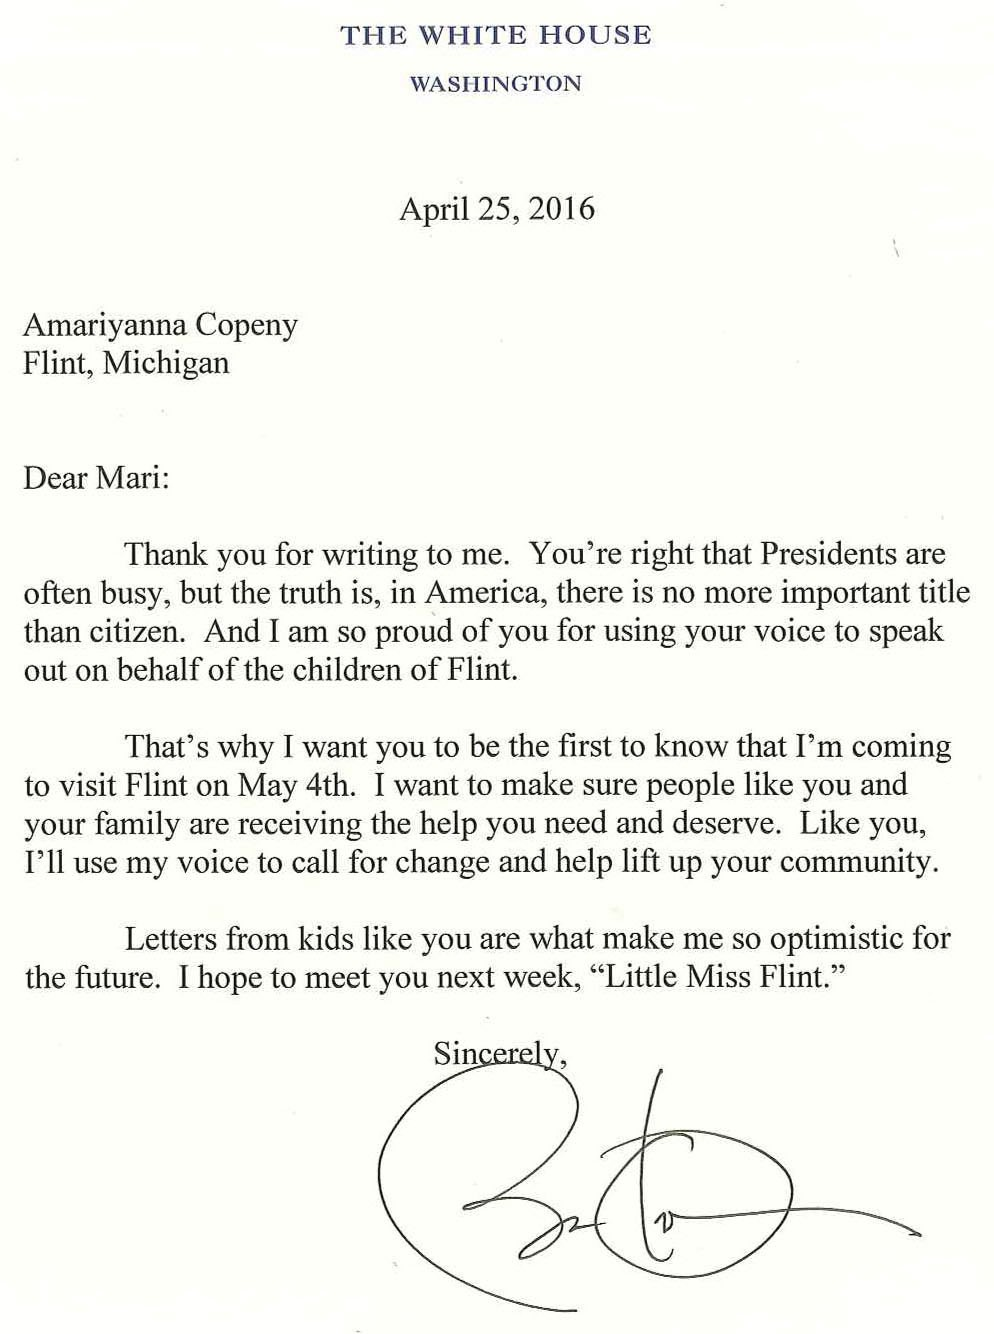 Asked and Answered President Obama Responds to an EightYearOld Girl from Flint